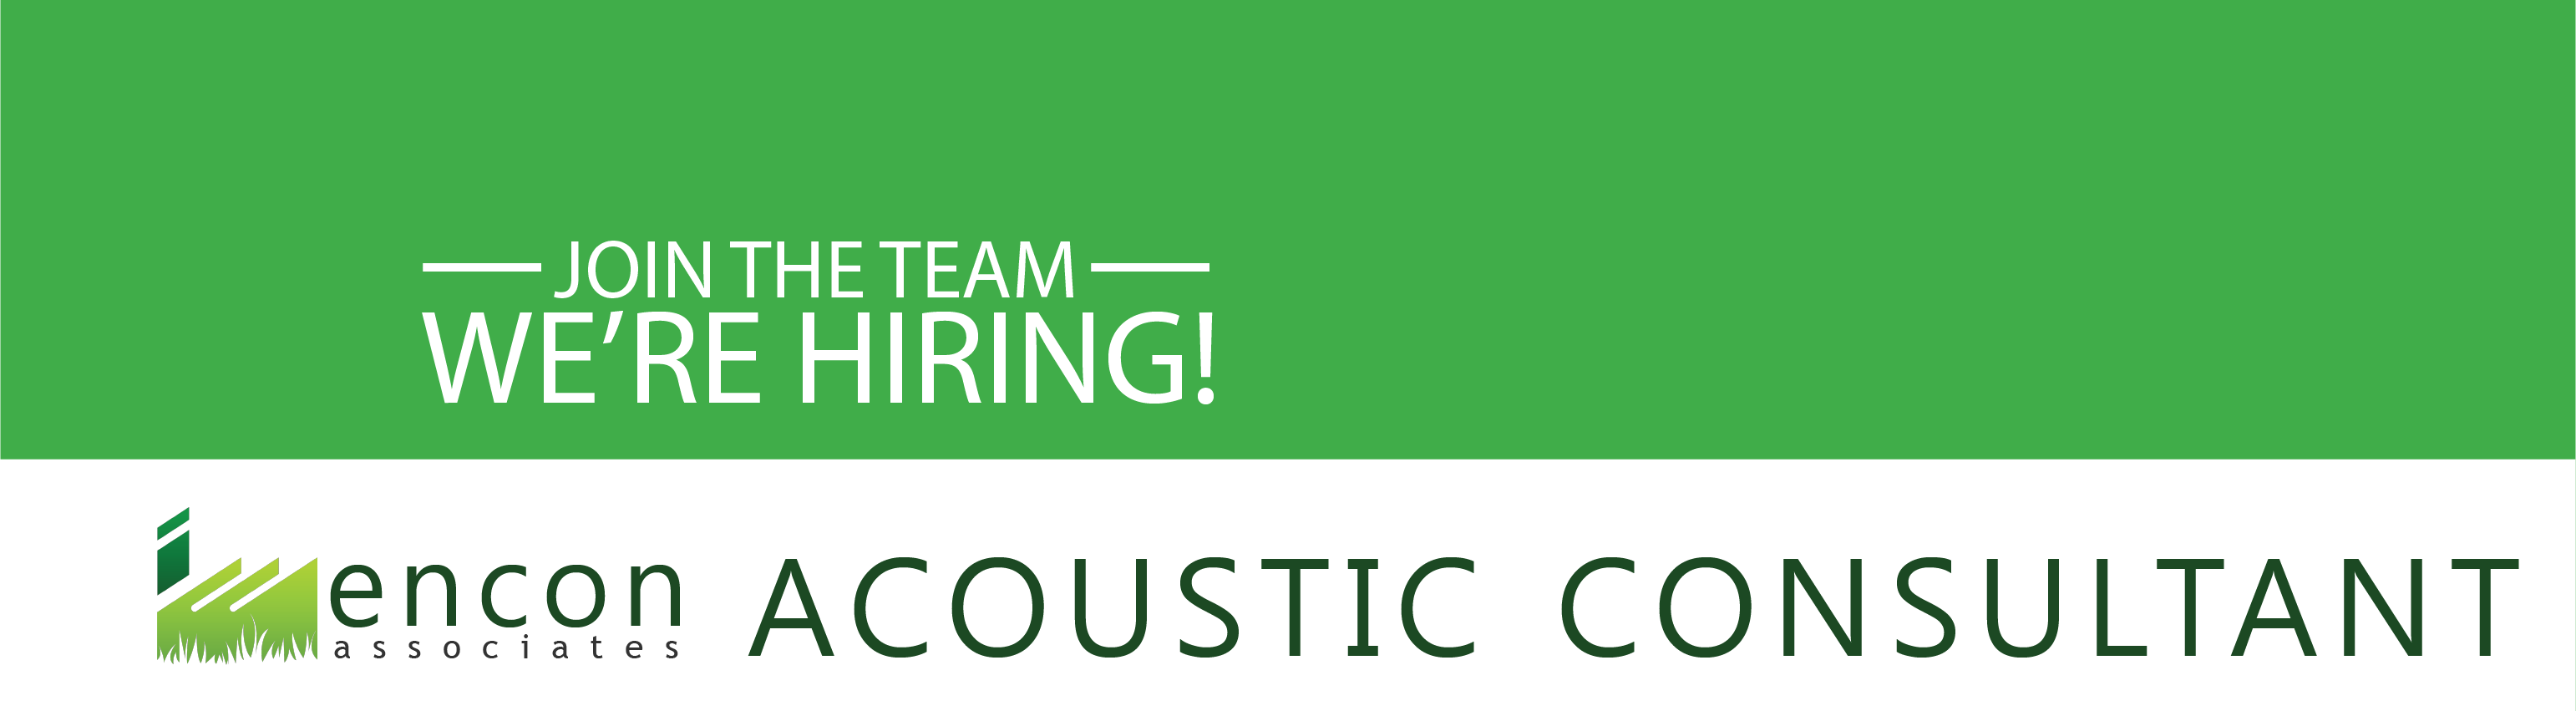 Acoustic Consultant | Job Opportunity | Encon Associates | Nottingham